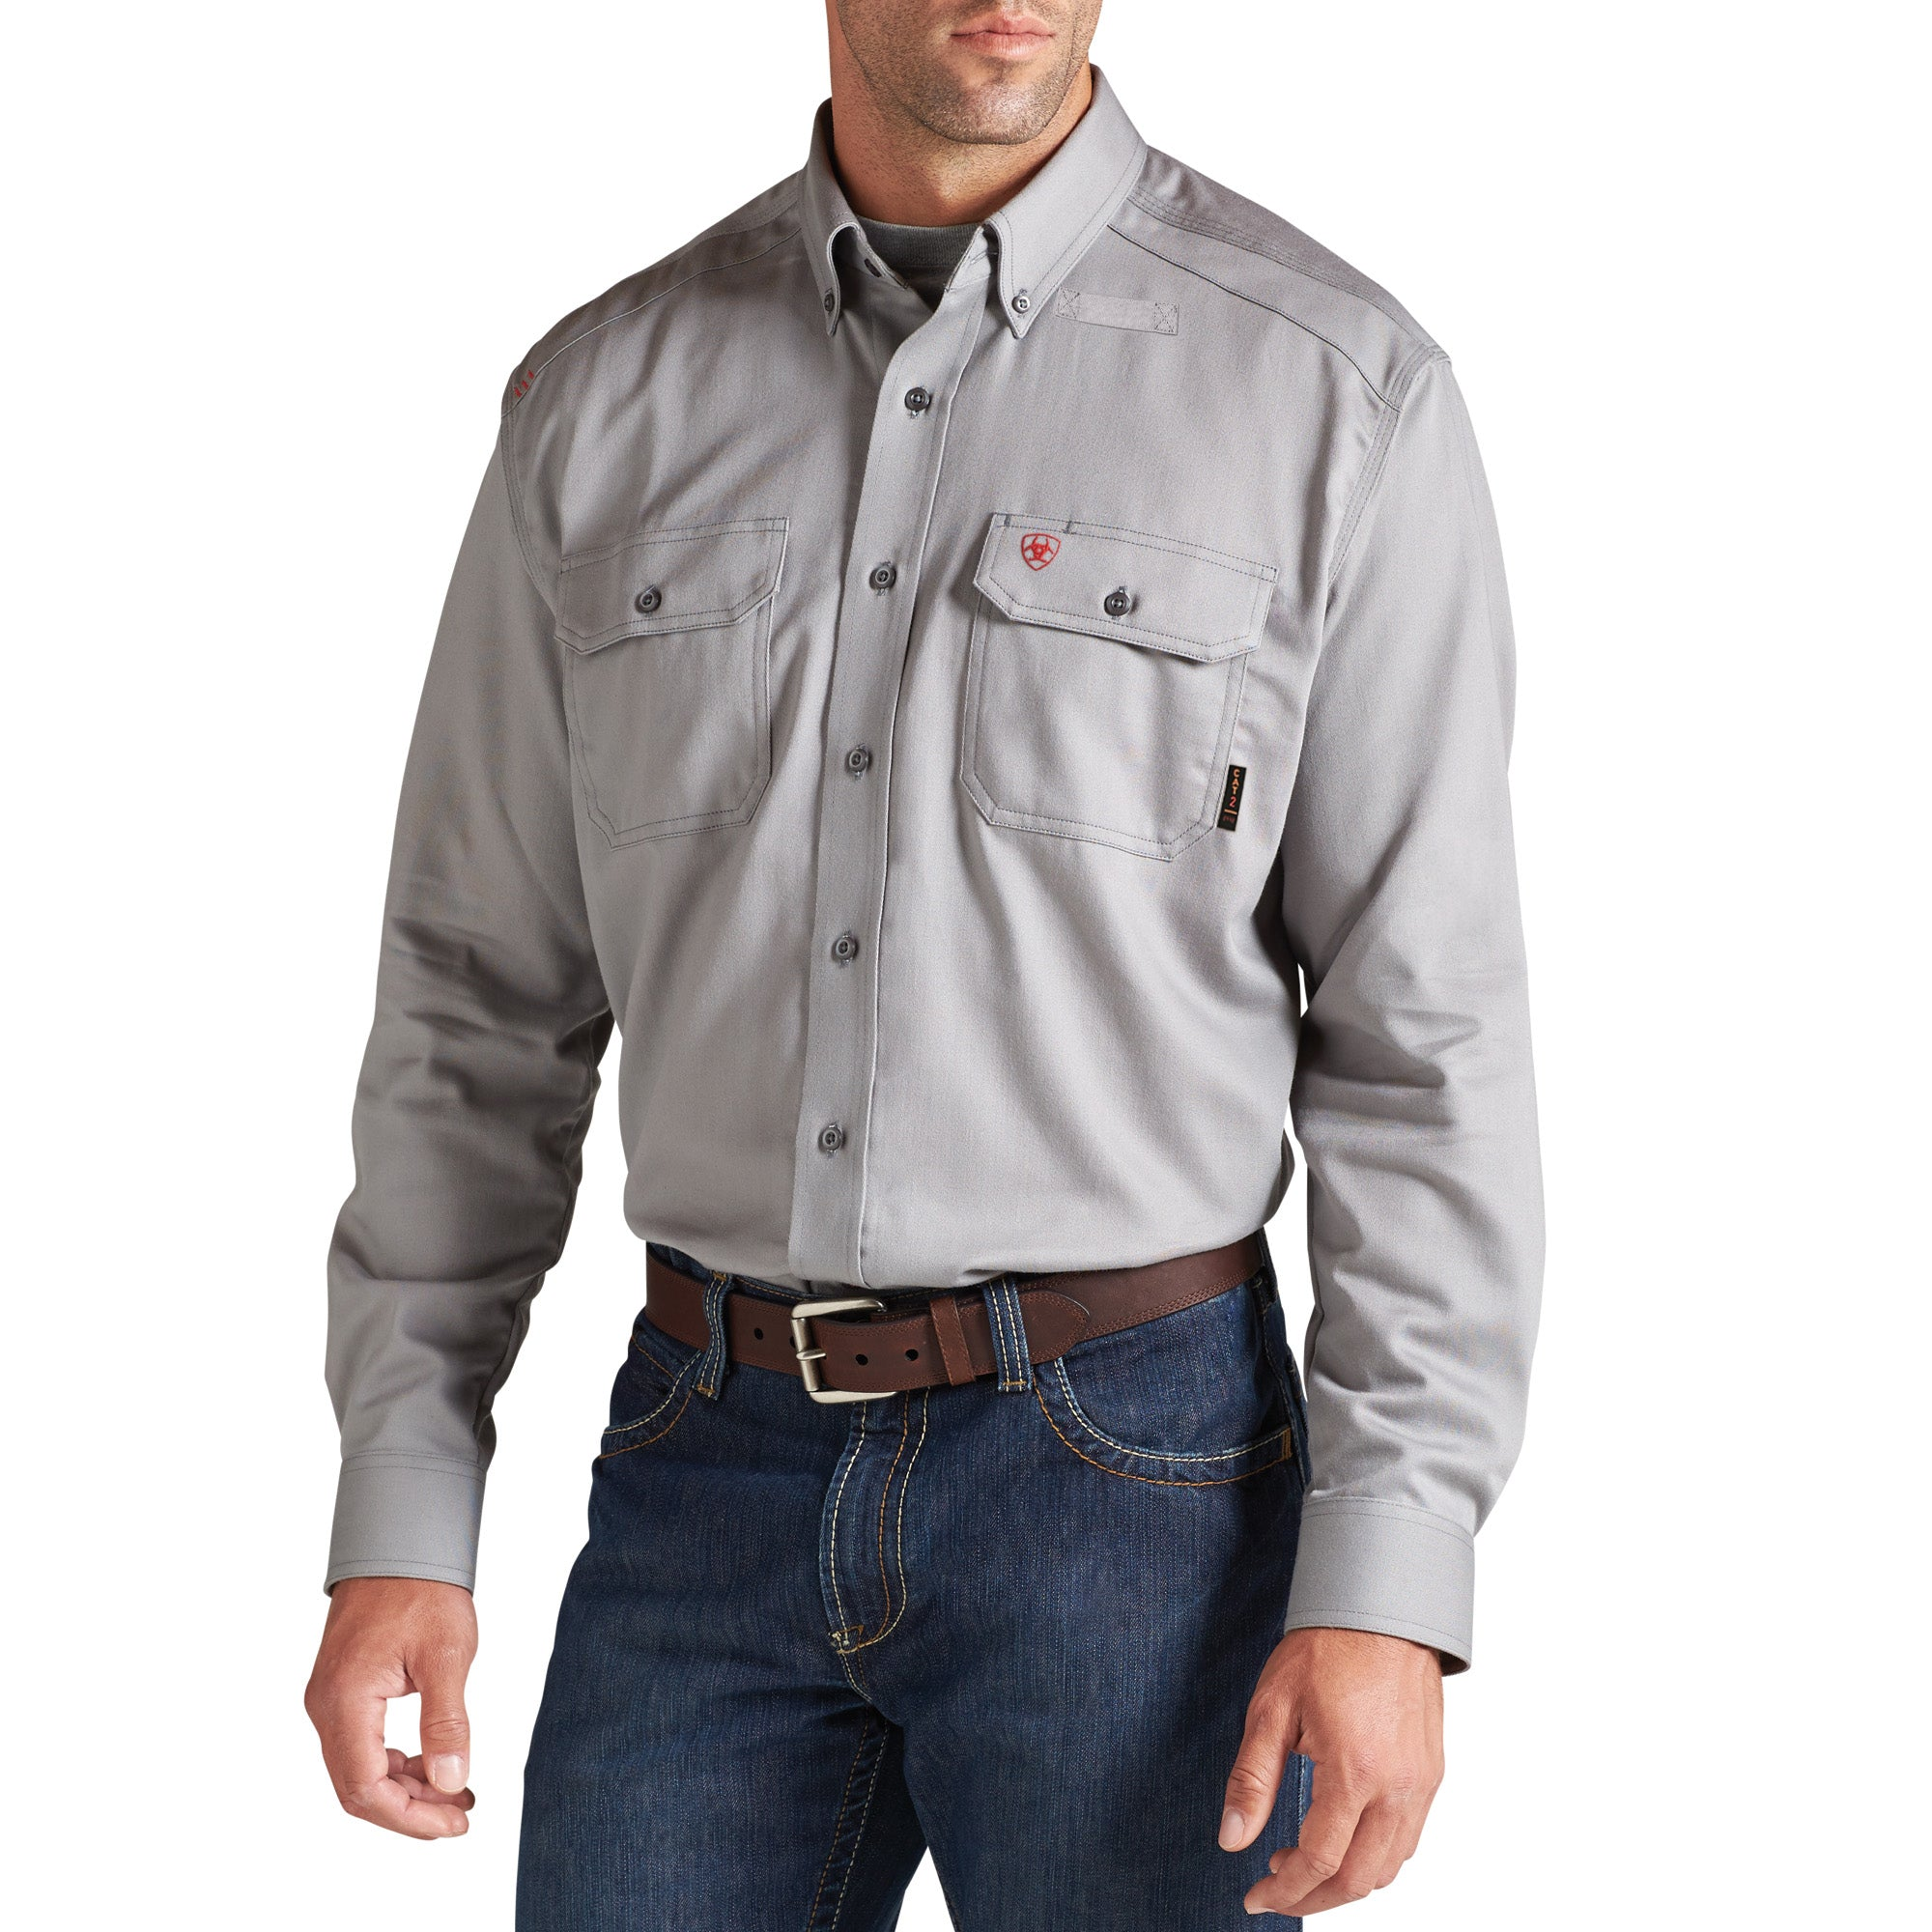 Ariat Men's Wrinkle Free Solid Pinpoint Classic Fit Shirt